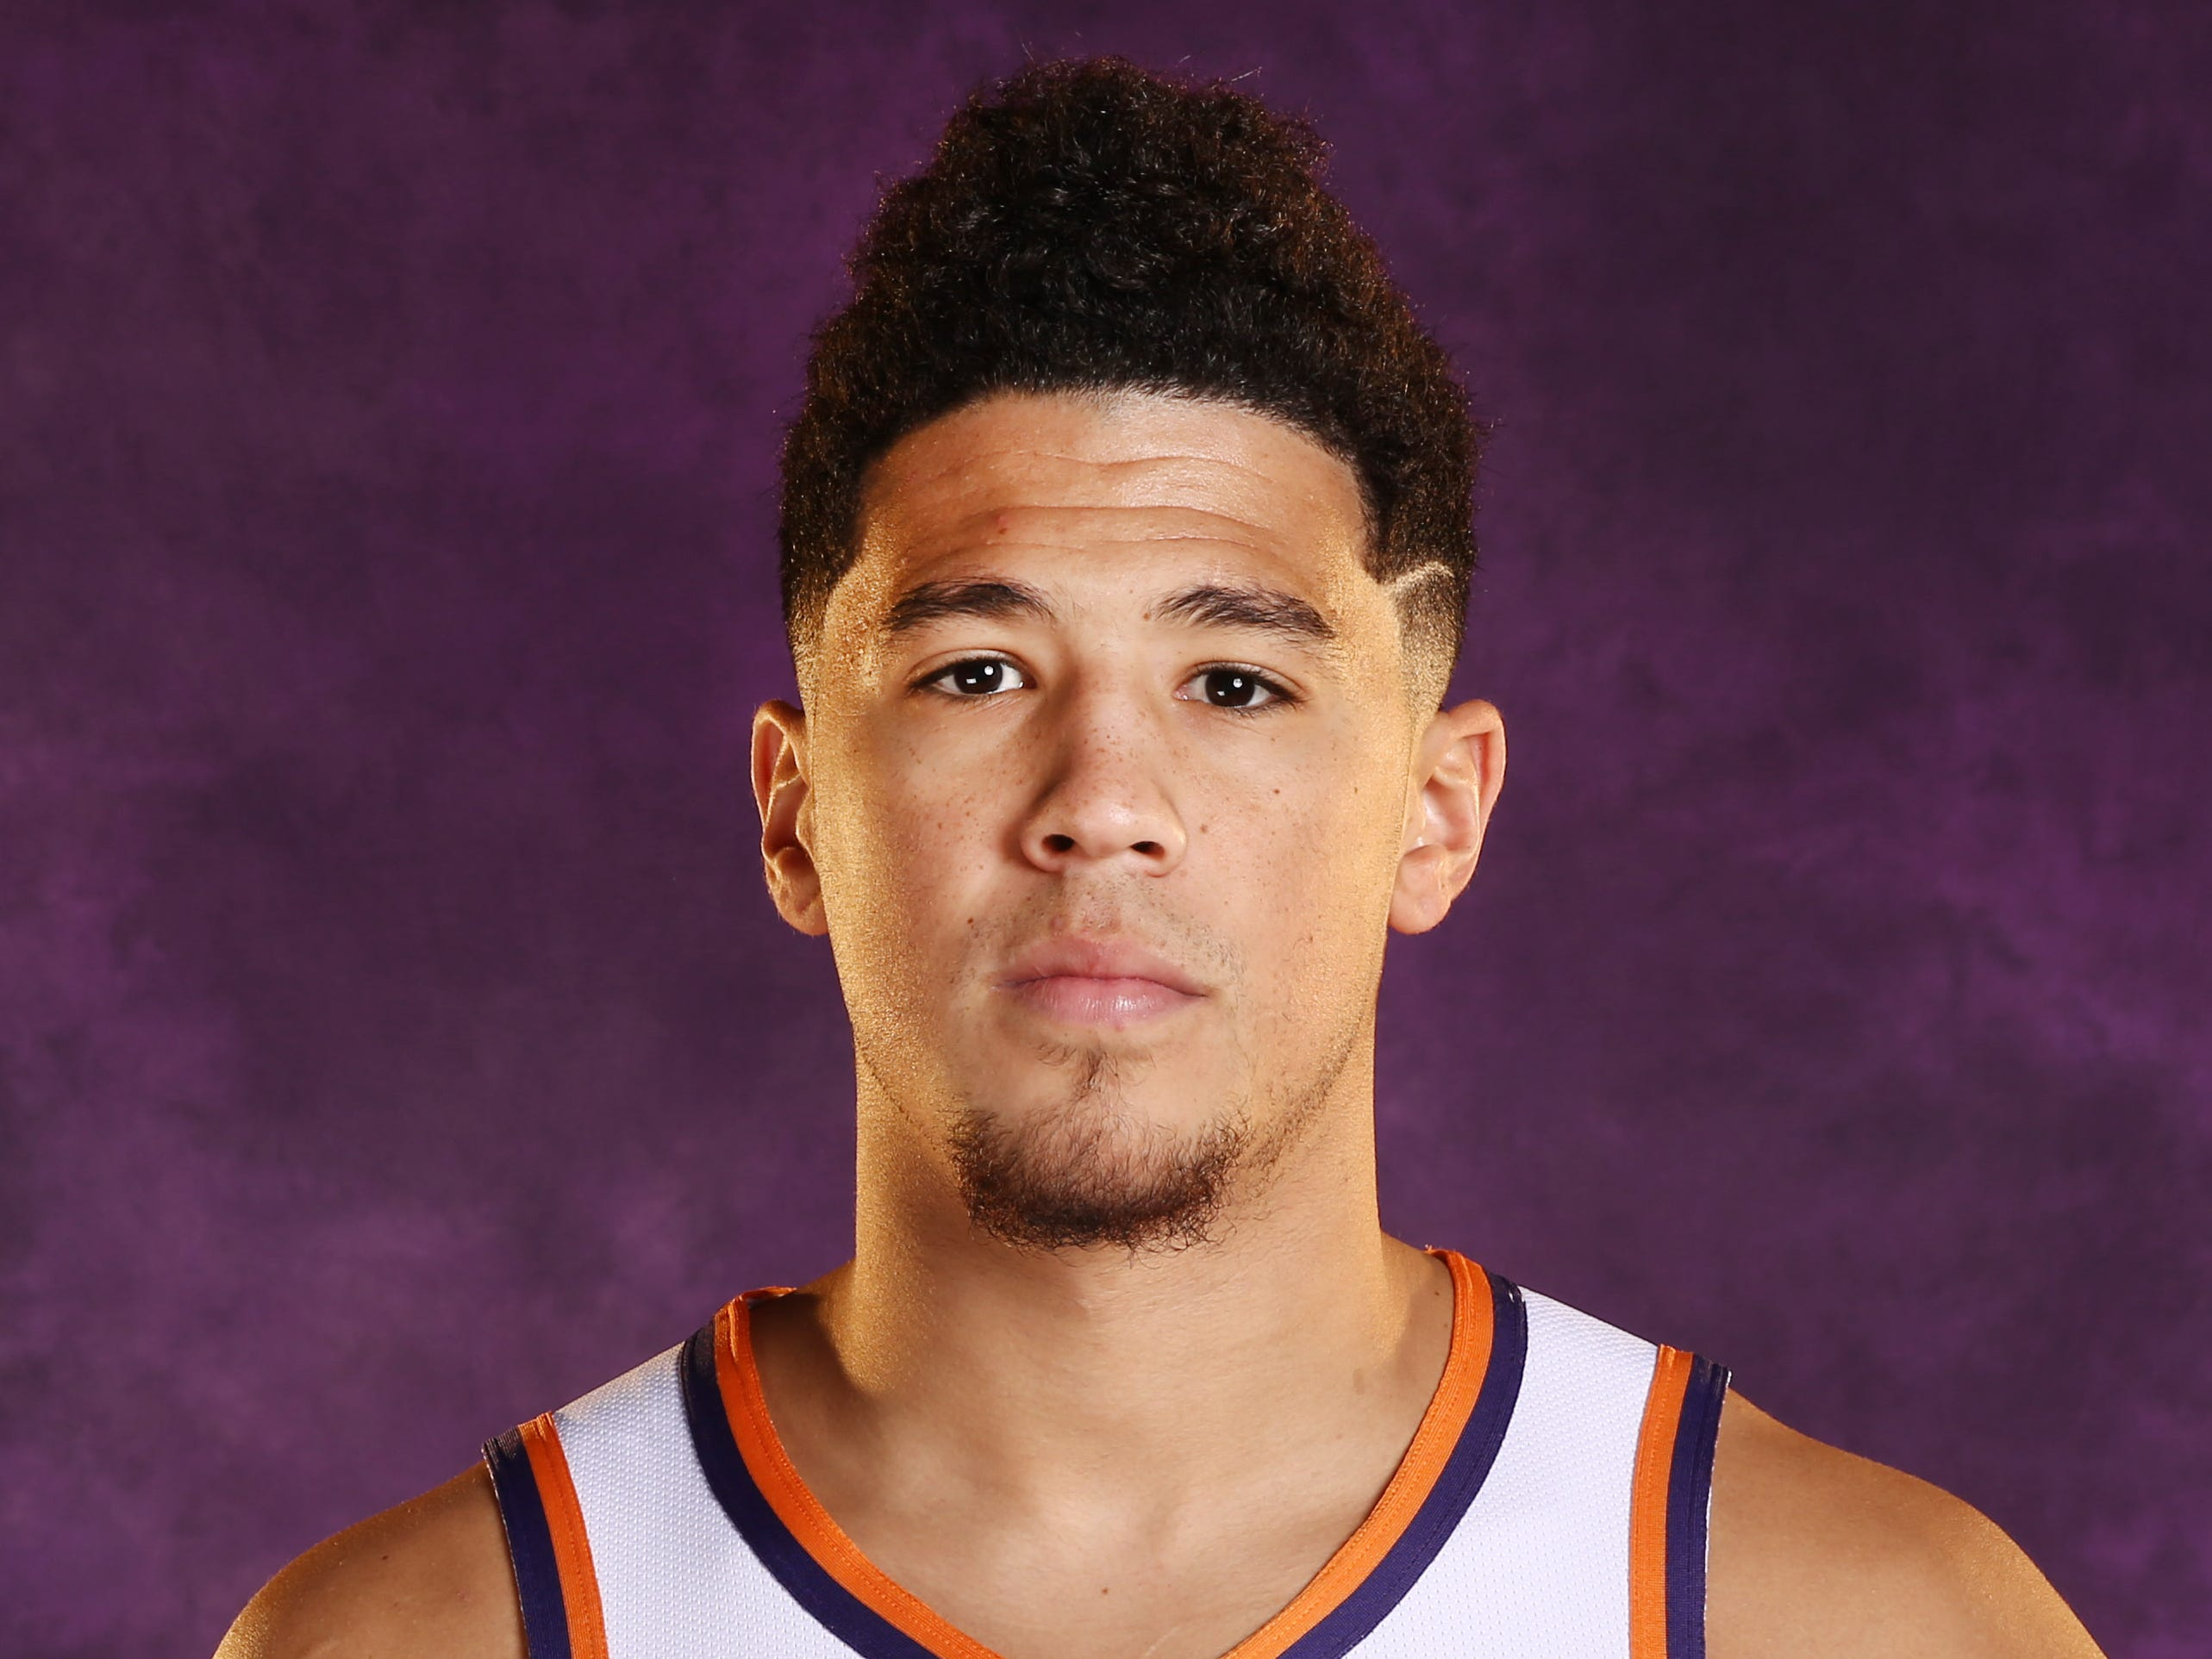 Phoenix Suns guard Devin Booker during media day at Talking Stick Resort Arena on Sep. 24, 2018, in Phoenix, Ariz.